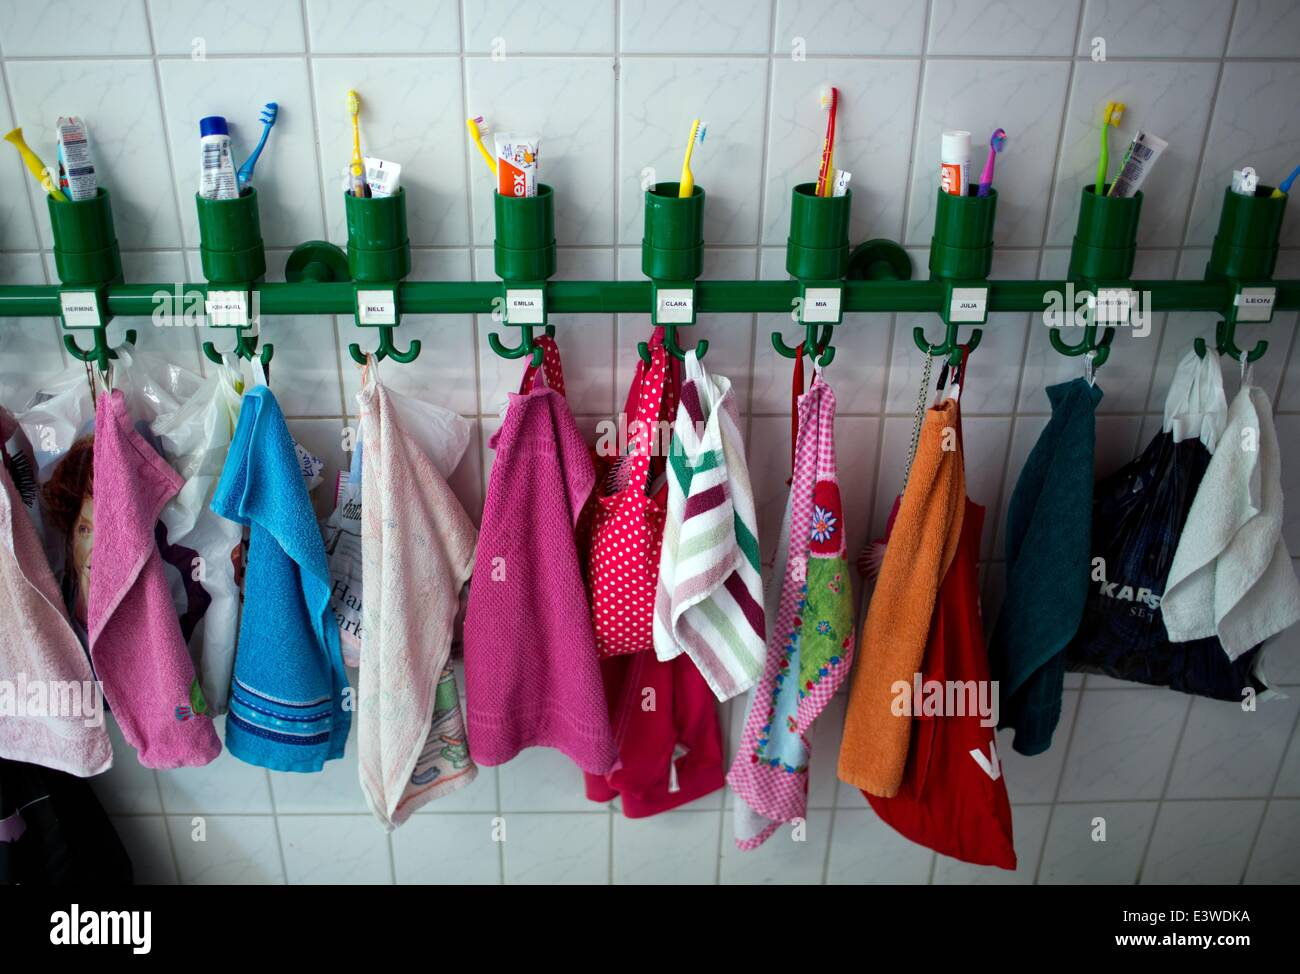 Wismar, Germany. 19th June, 2014. Colourful towels and toothbrush tumblers stand on a shelf in the washing room Stock Photo